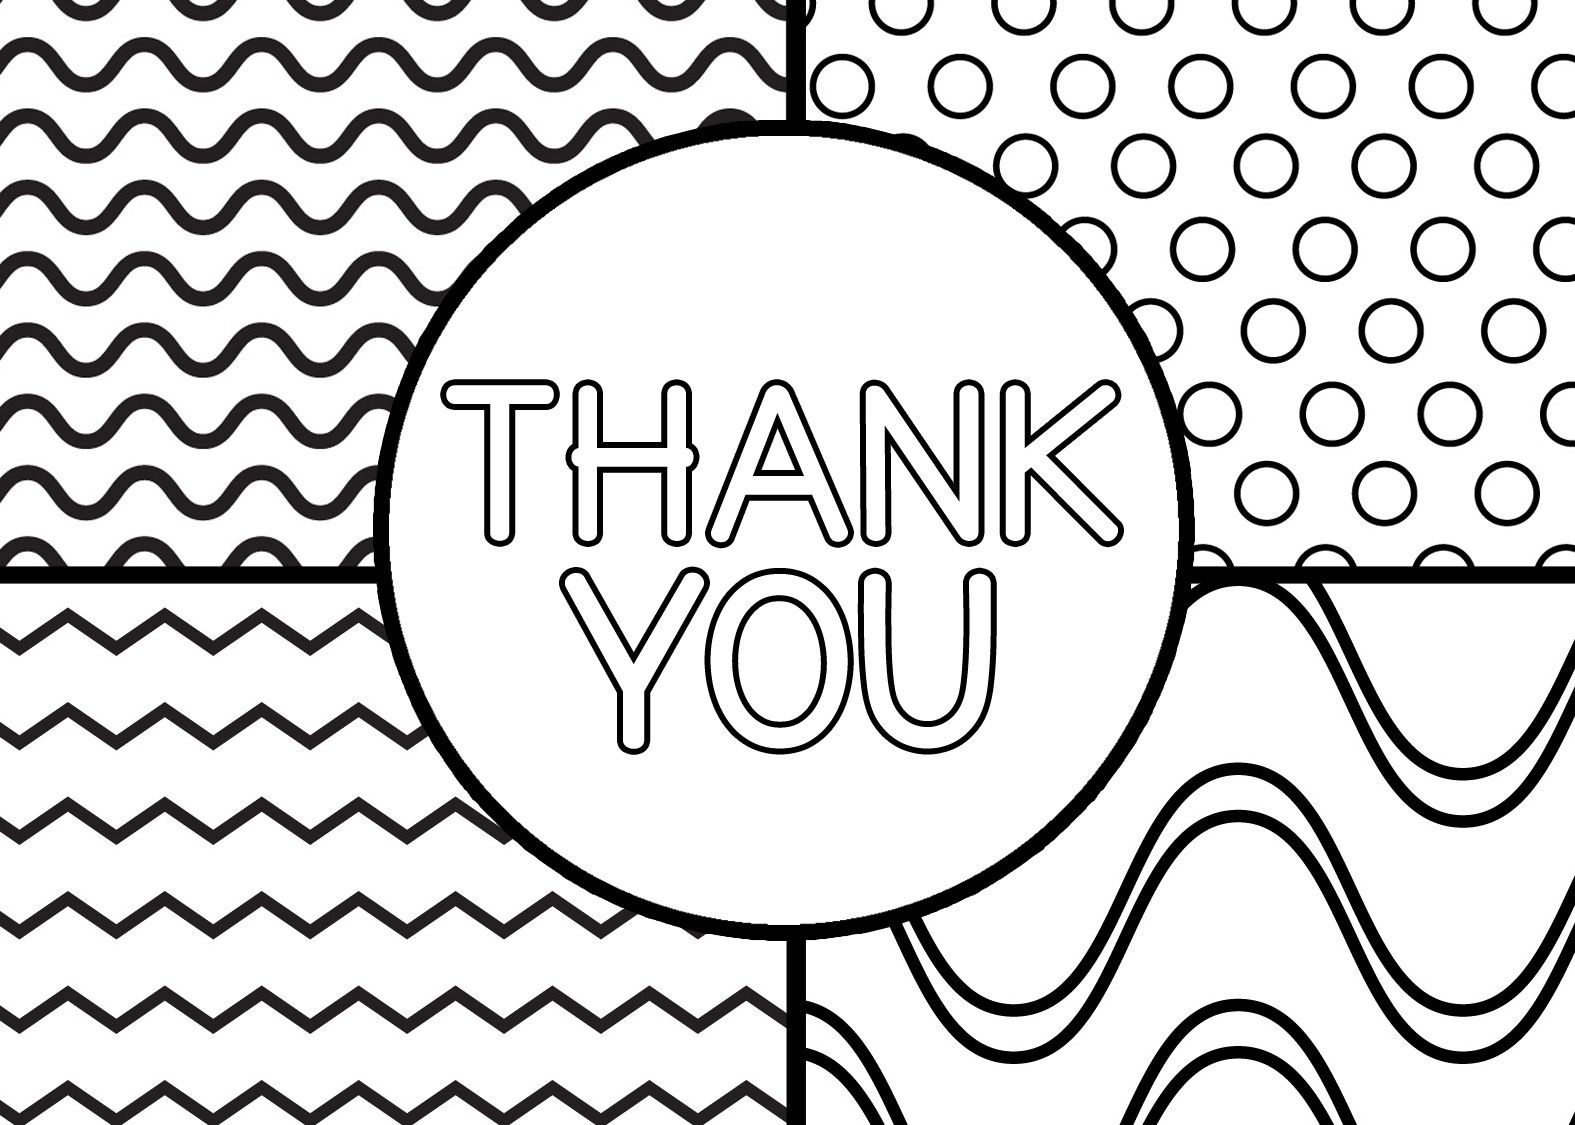 Printable Thank You Cards For Kids | Classroom Thank You Cards - Free Printable Thank You Cards Black And White